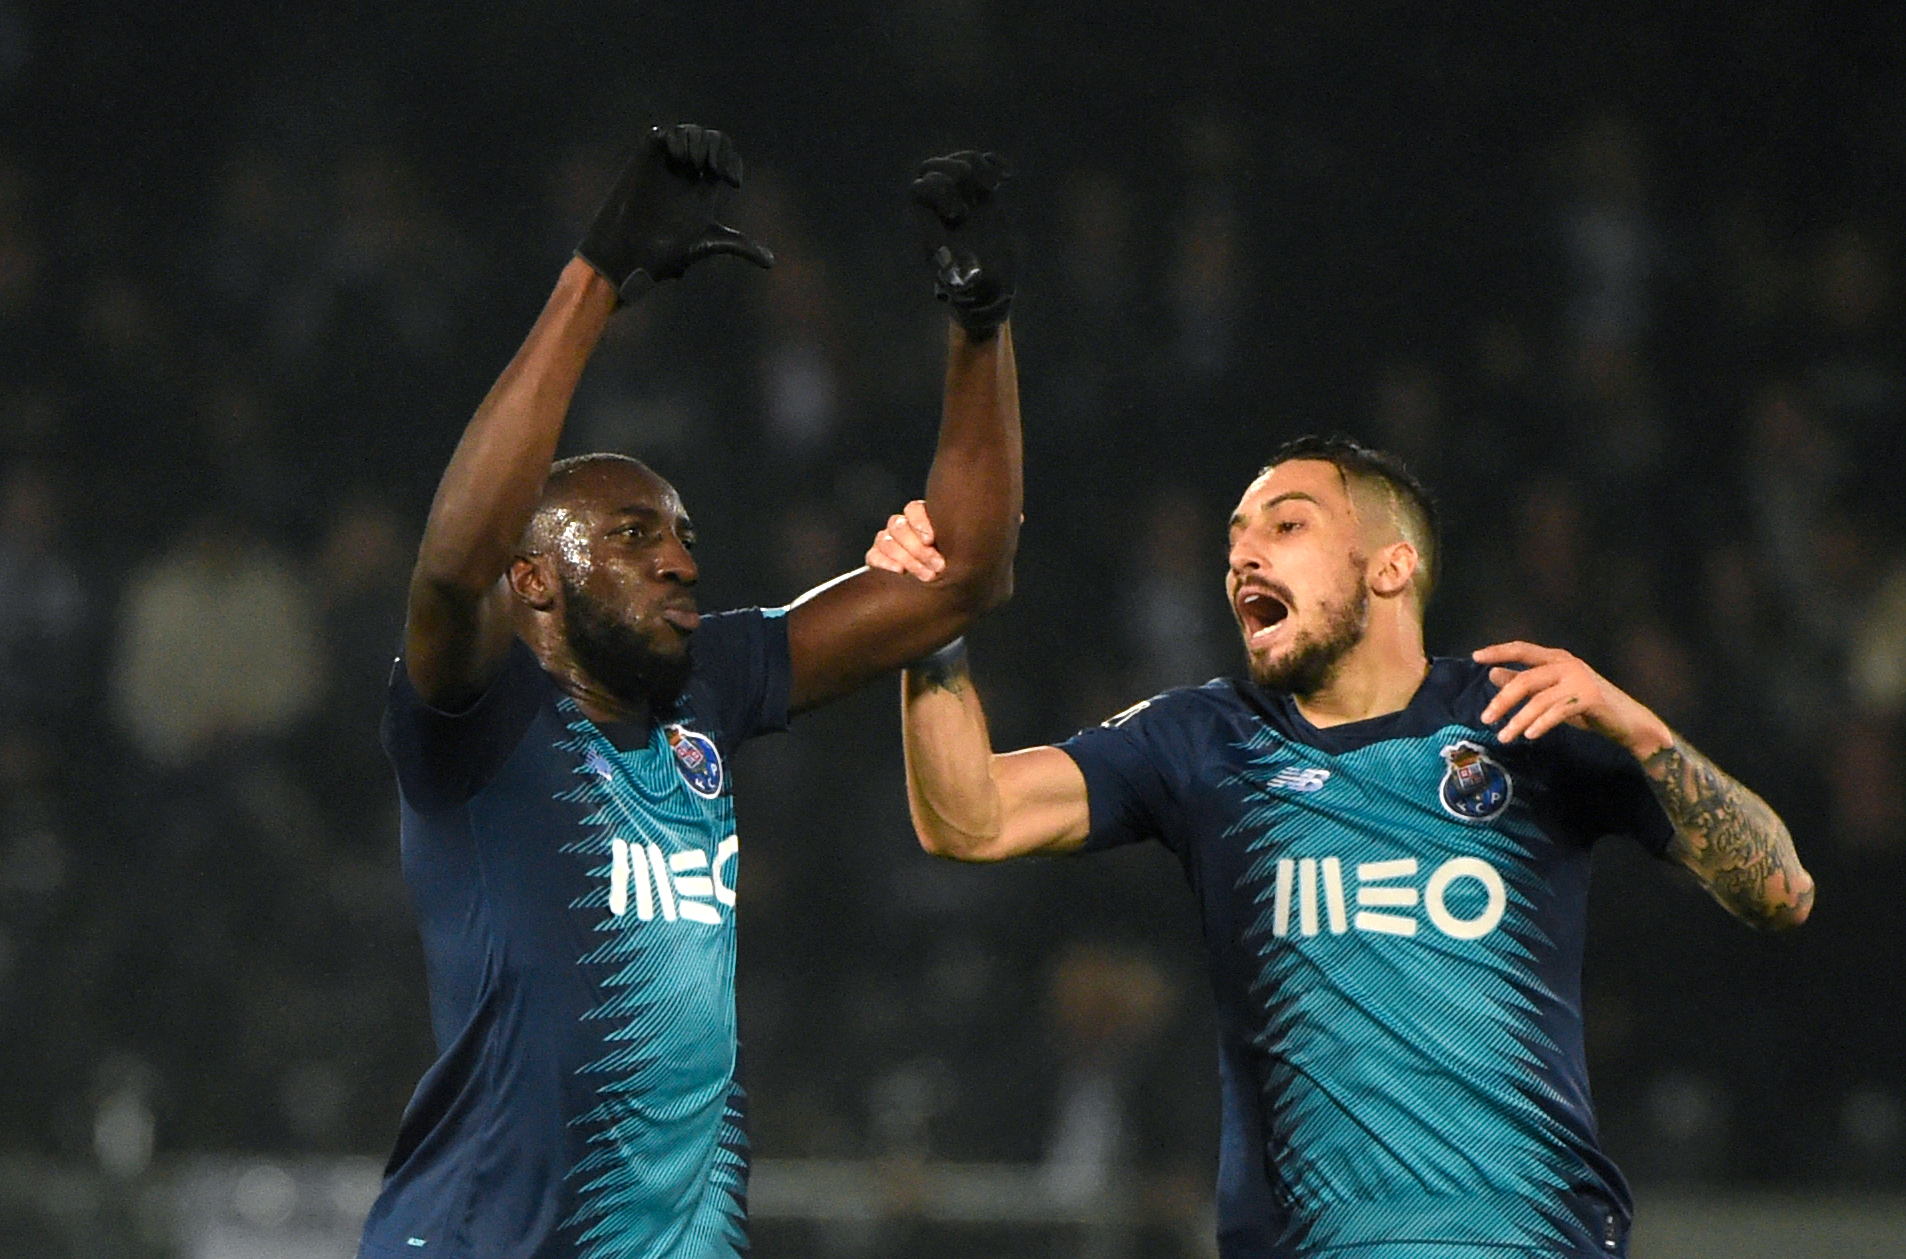 Porto forward Moussa Marega walks off pitch after suffering racist abuse